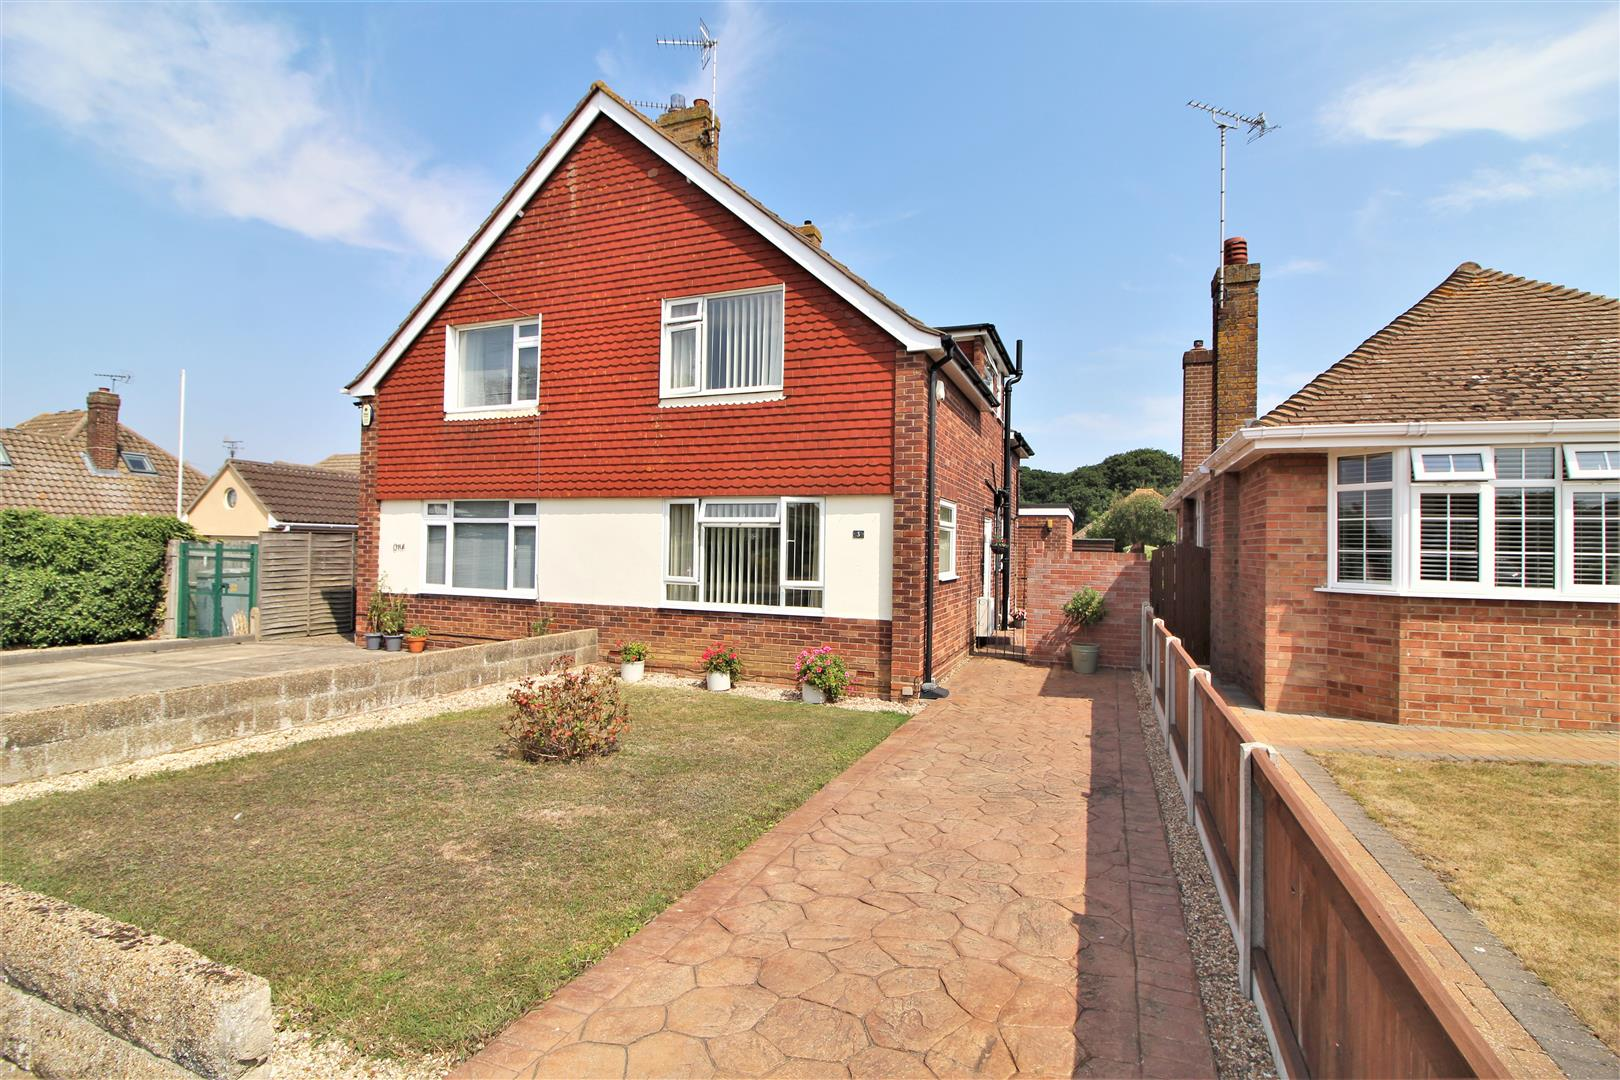 Newport Way, Frinton-On-Sea, Essex, CO13 0BW